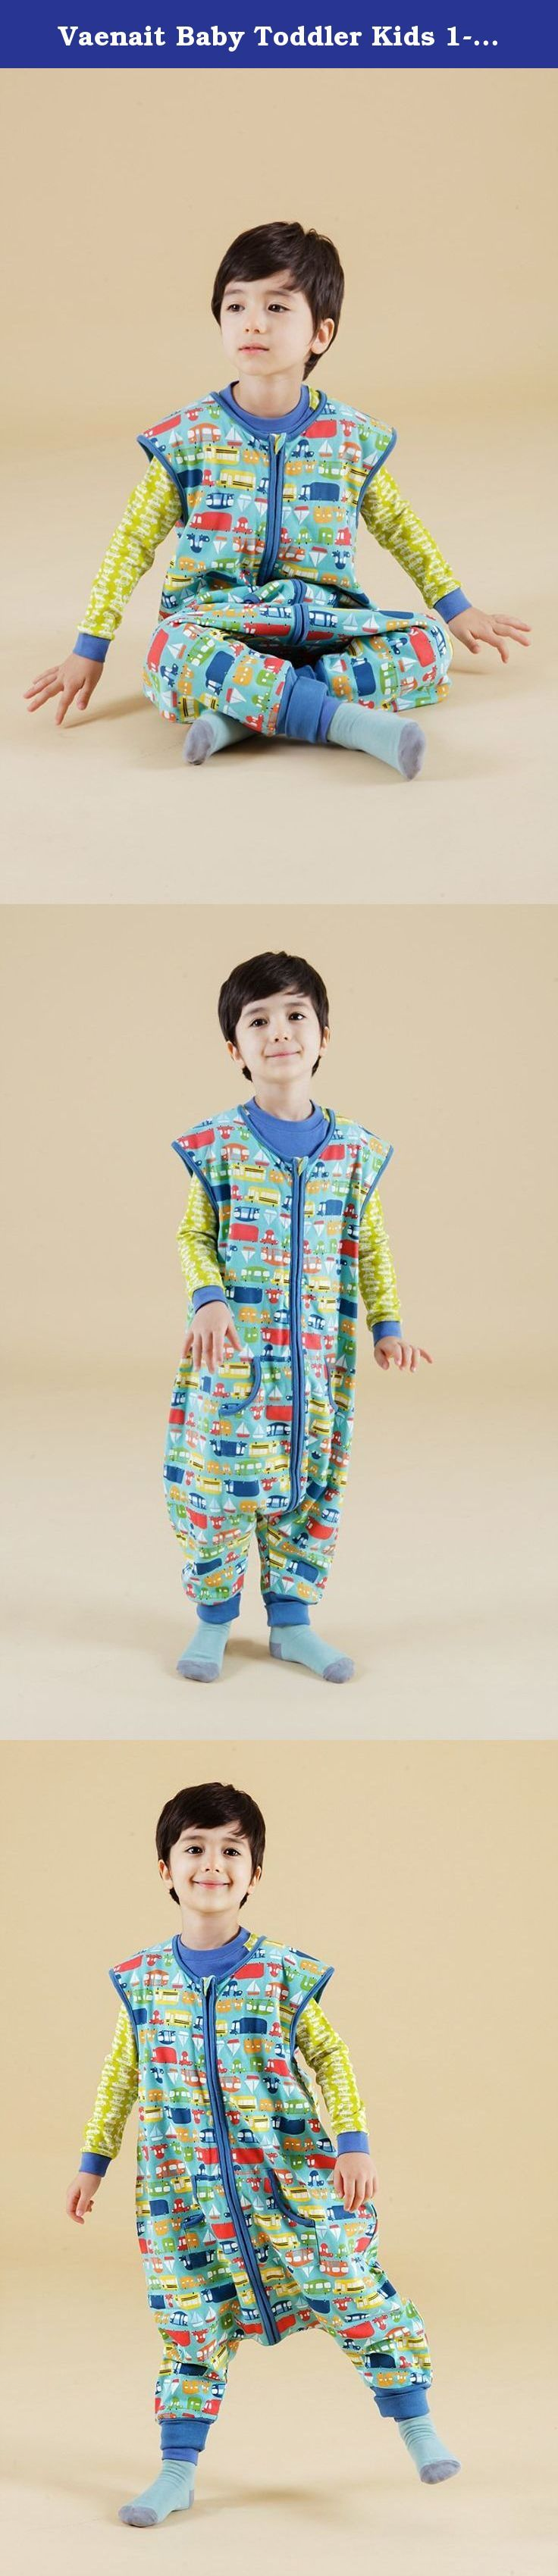 Vaenait Baby Toddler Kids 1-7Y Sleep and Play Blanket Sleepsack Sleep Travel S. The Vaenait Baby Sleepsack replaces loose blankets in the crib, with us unique foot openings. In addition to helping your kids sleep safer and better, too. It is a warm cuddly blanket they cannot kick off, ensuring little ones sleep soundly throughout the night. This wearable blanket becomes the trusted bedtime roution,providing the secure feeling your kids need to fall asleep fast . It is good for 1 to 7…